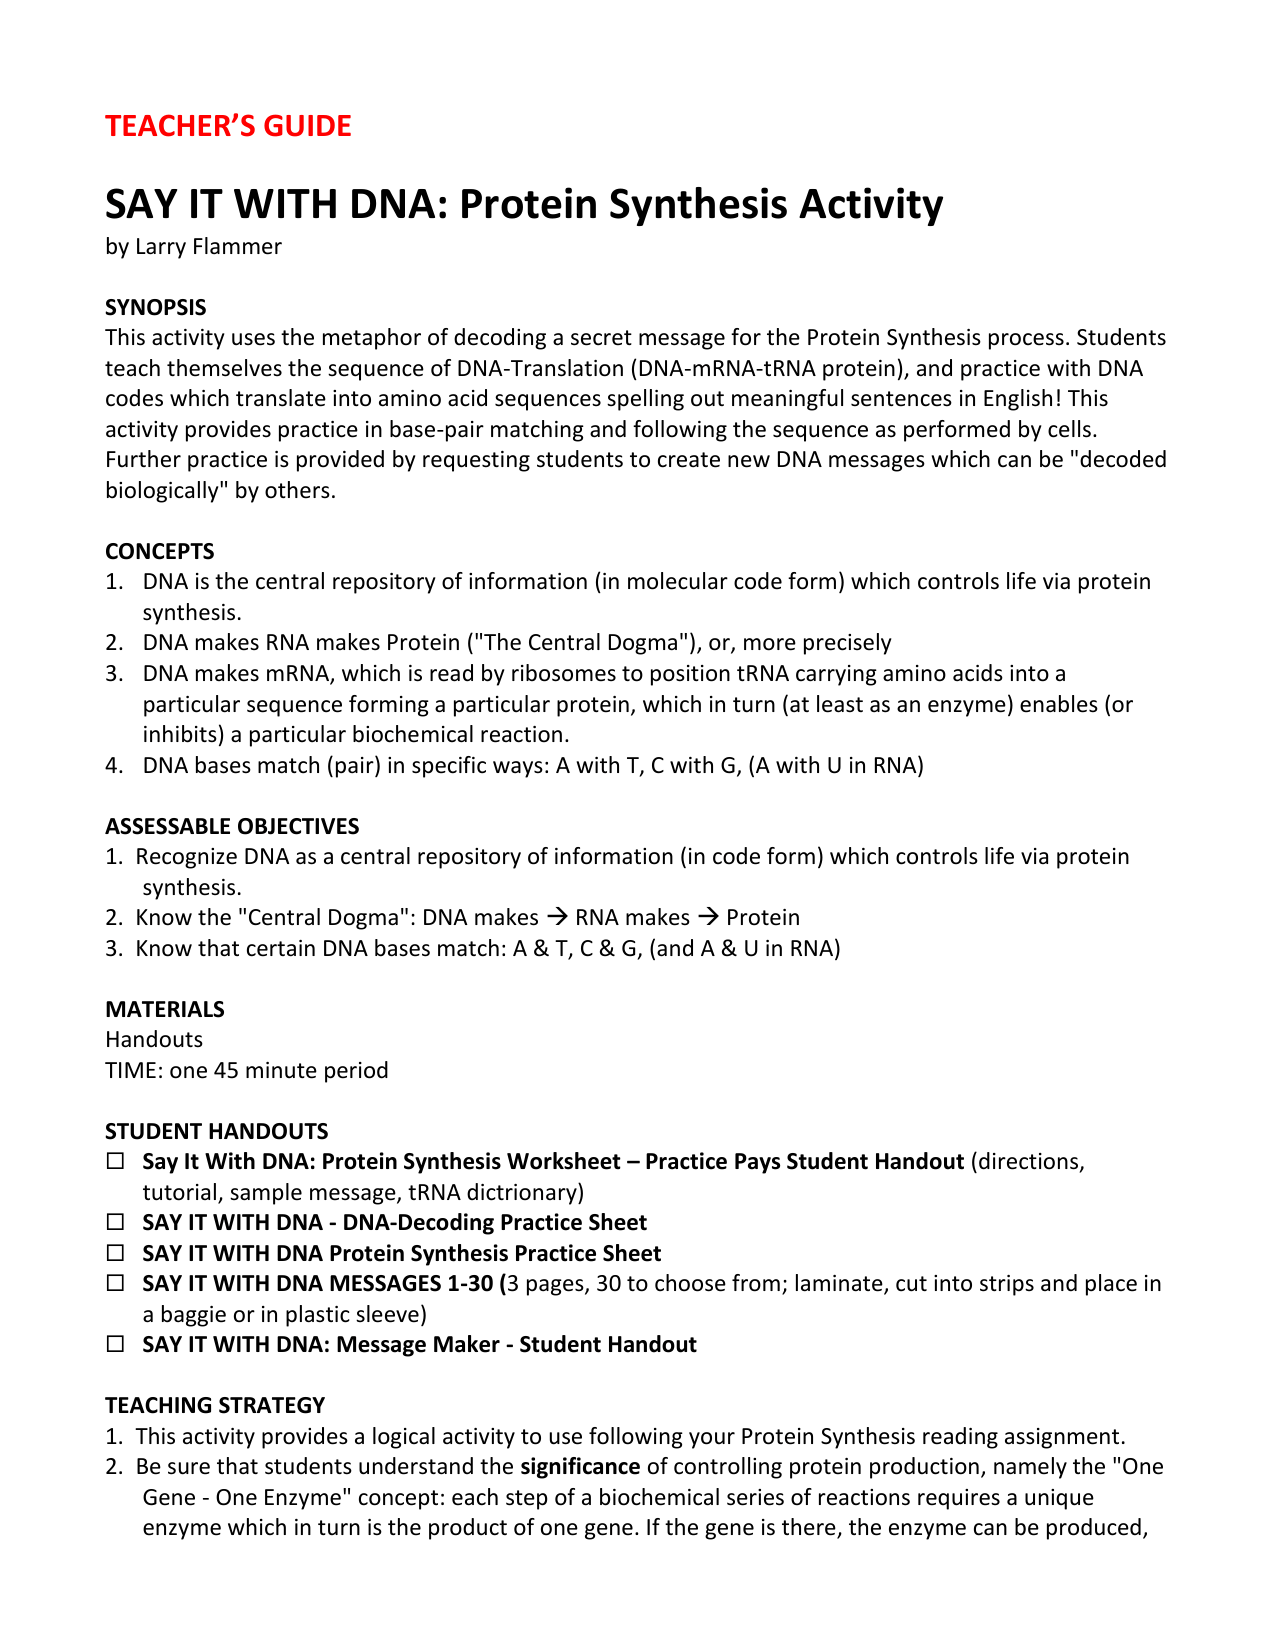 Protein Synthesis Practice 2 Worksheet Answer Key